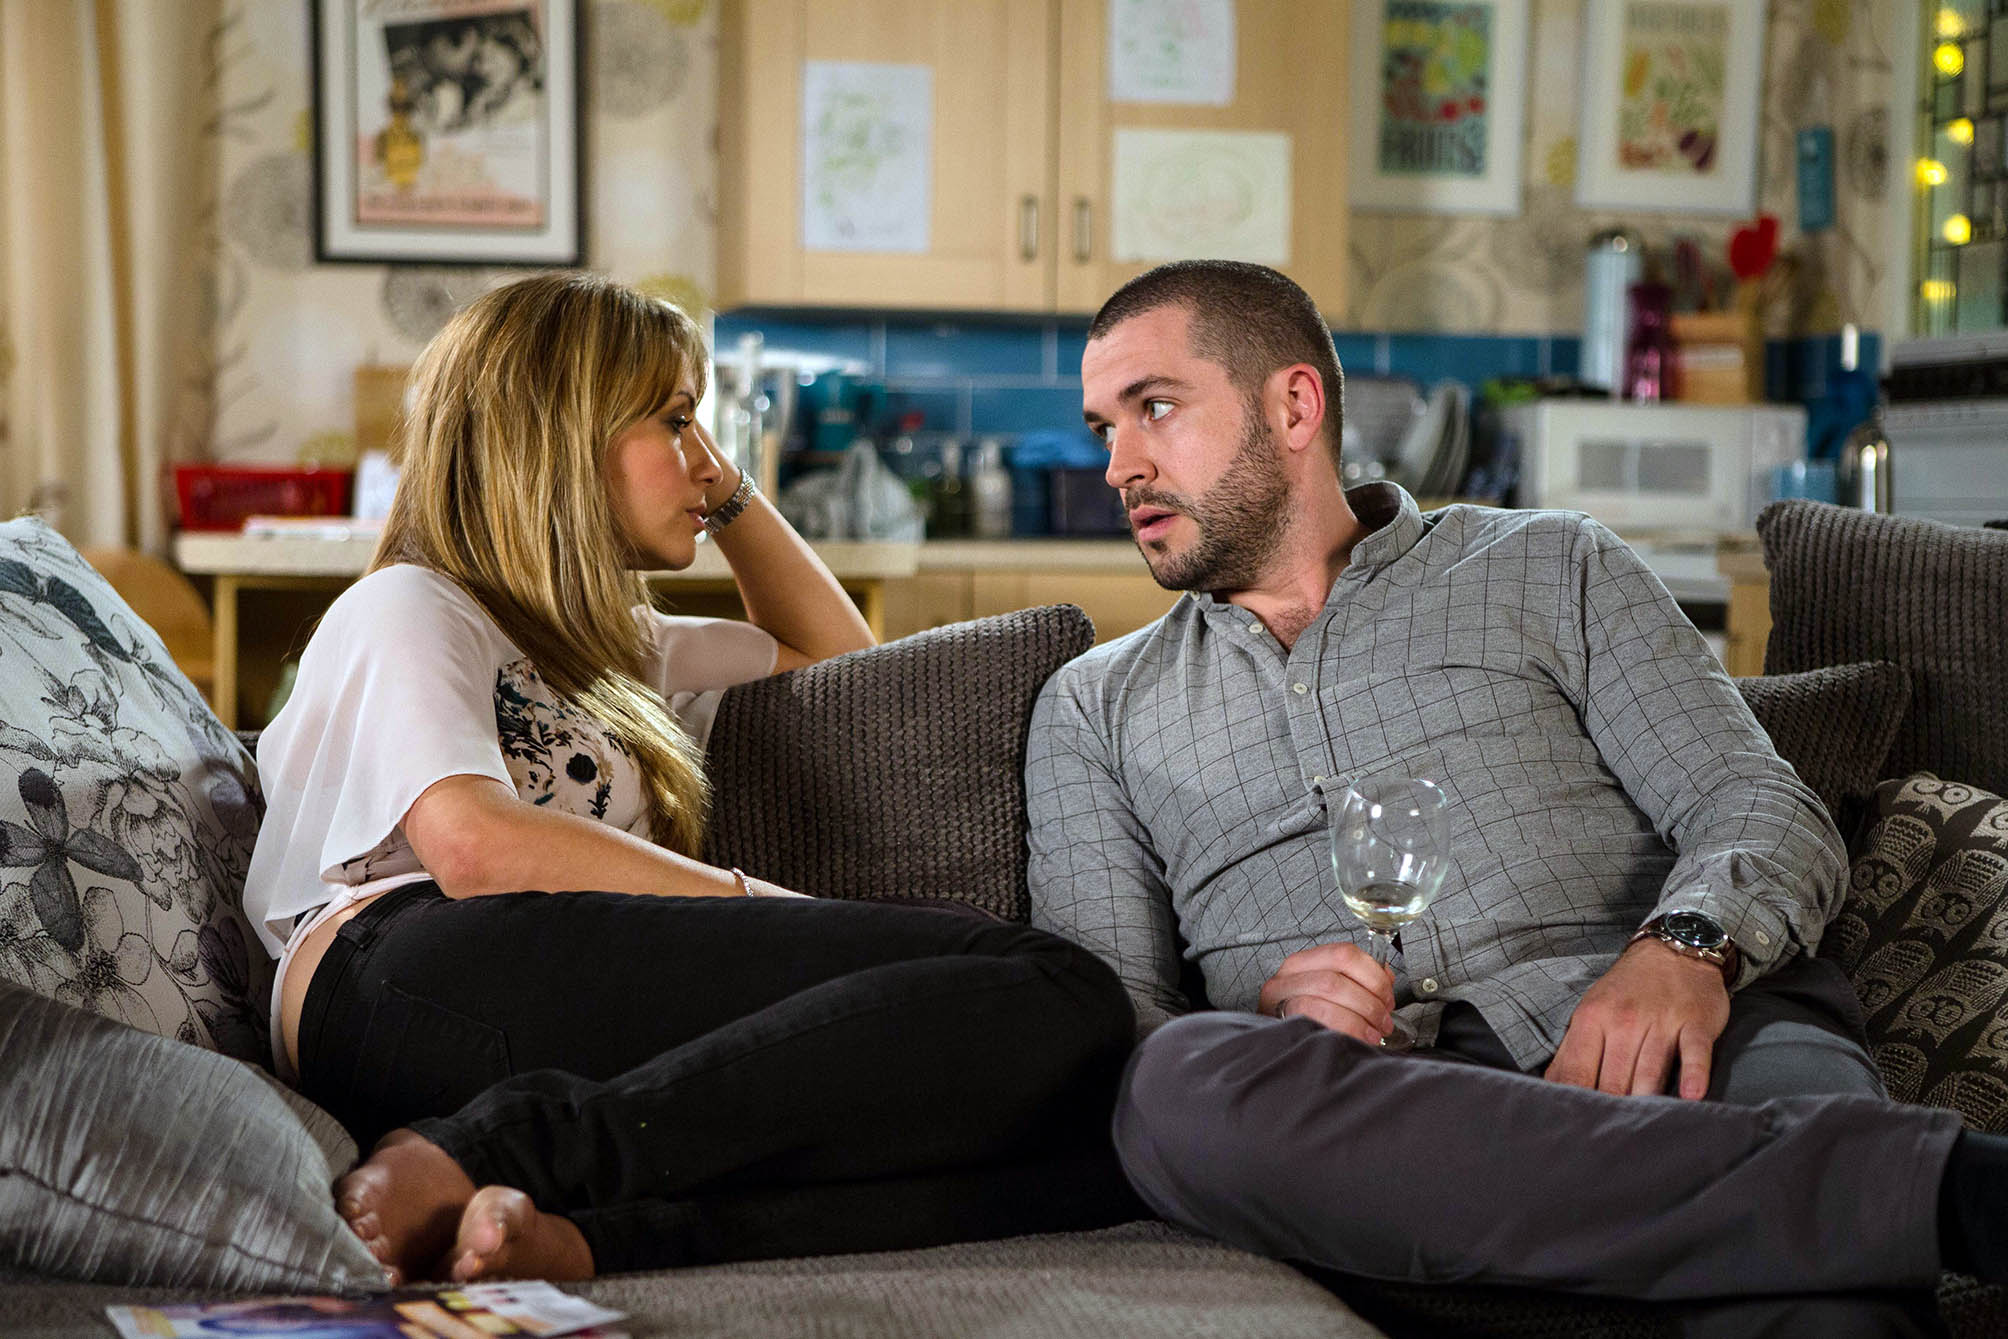 Coronation Street: Maria becomes obsessed with Aidan following their fling, reveals Shayne Ward